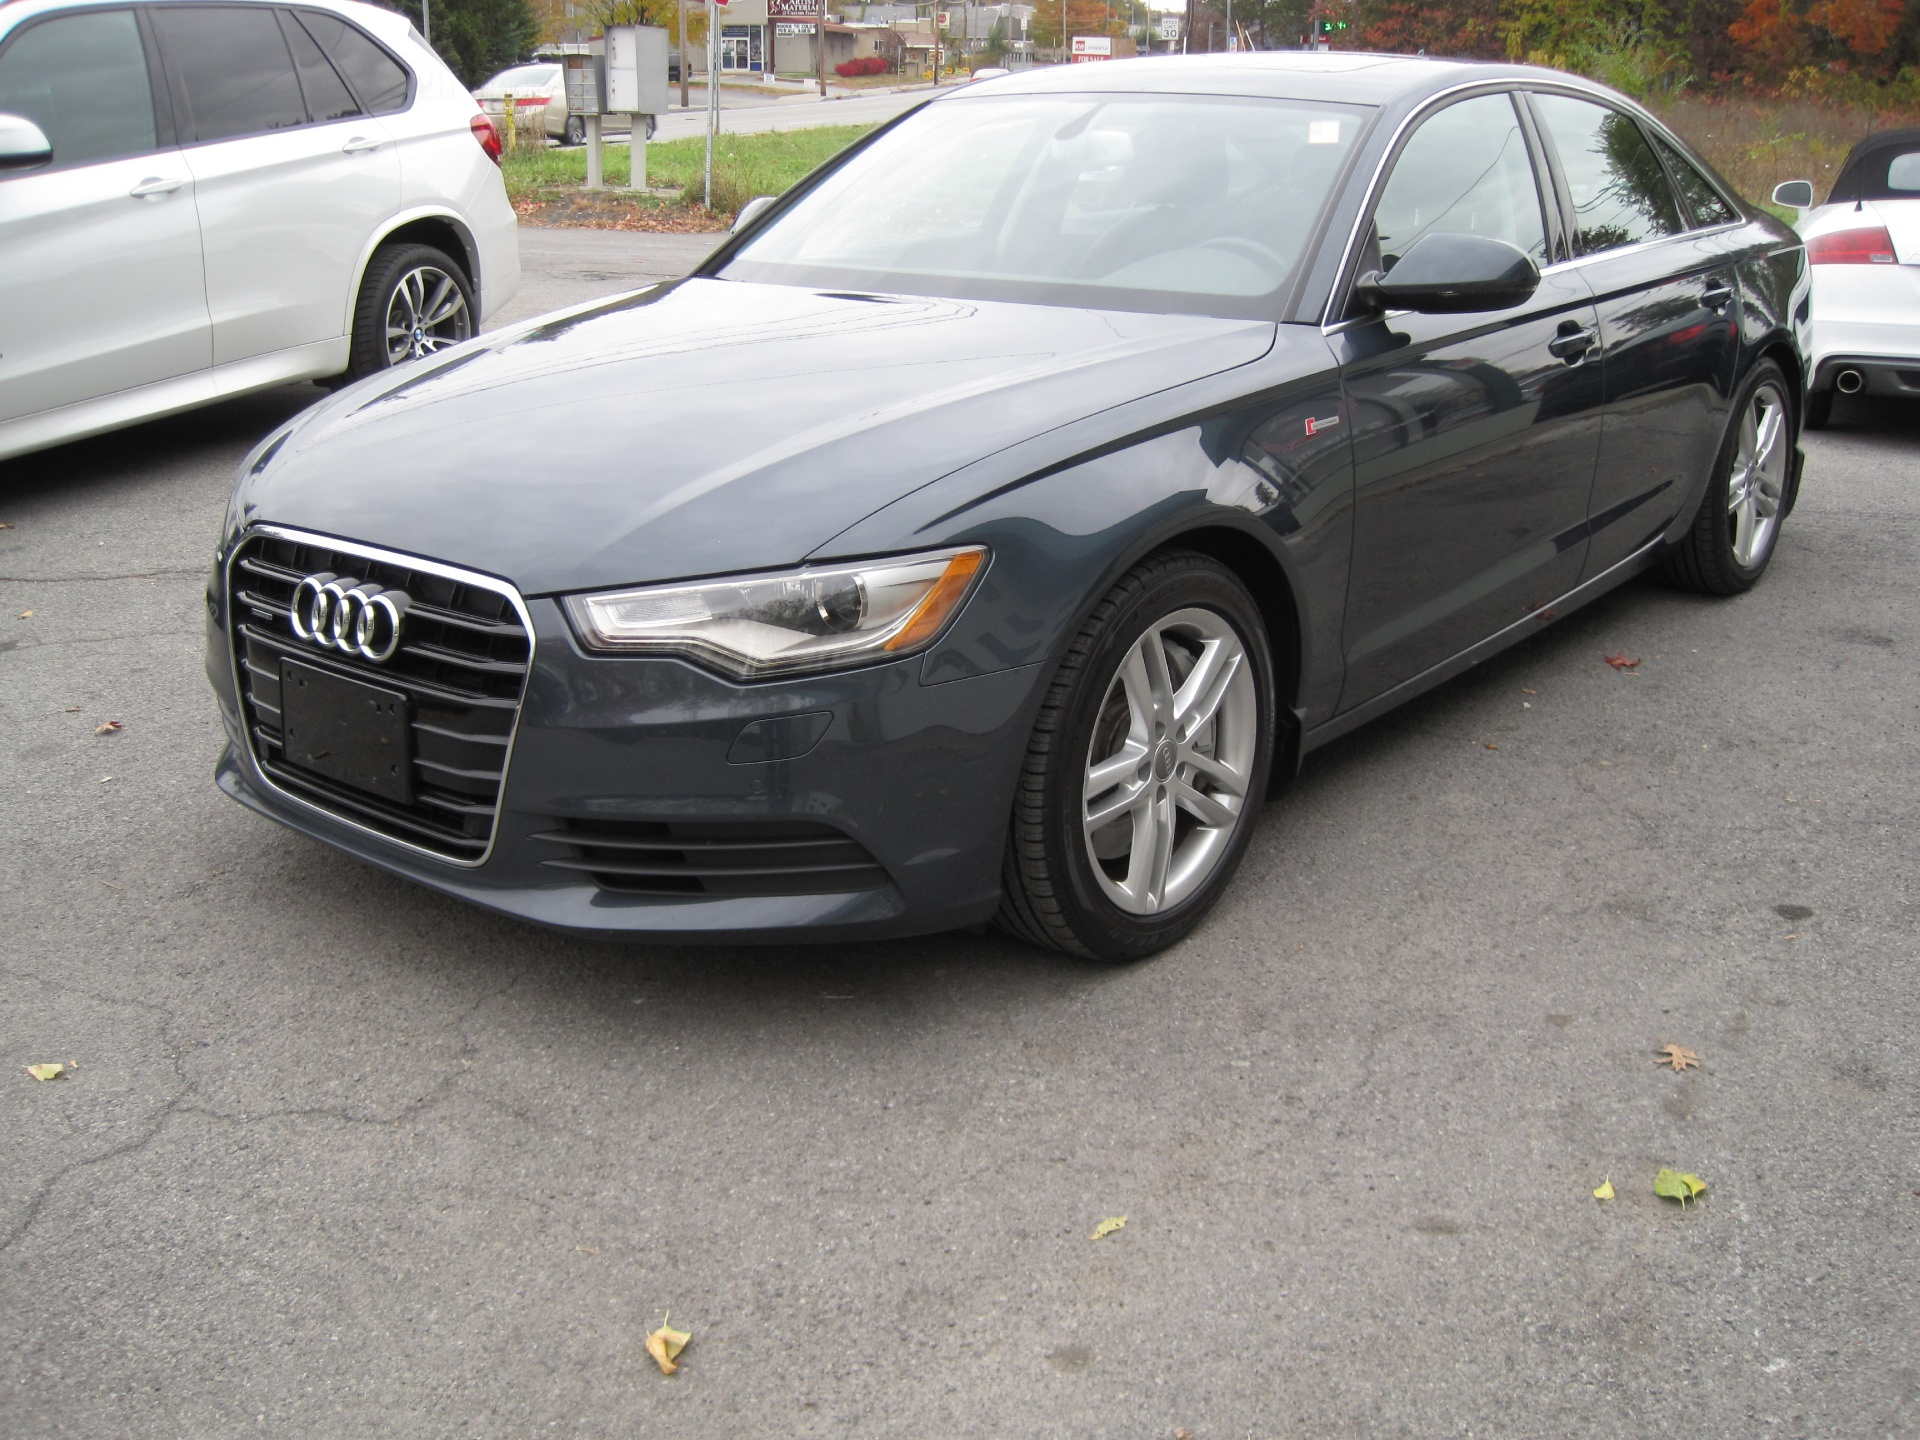 Audi A T Quarttro on